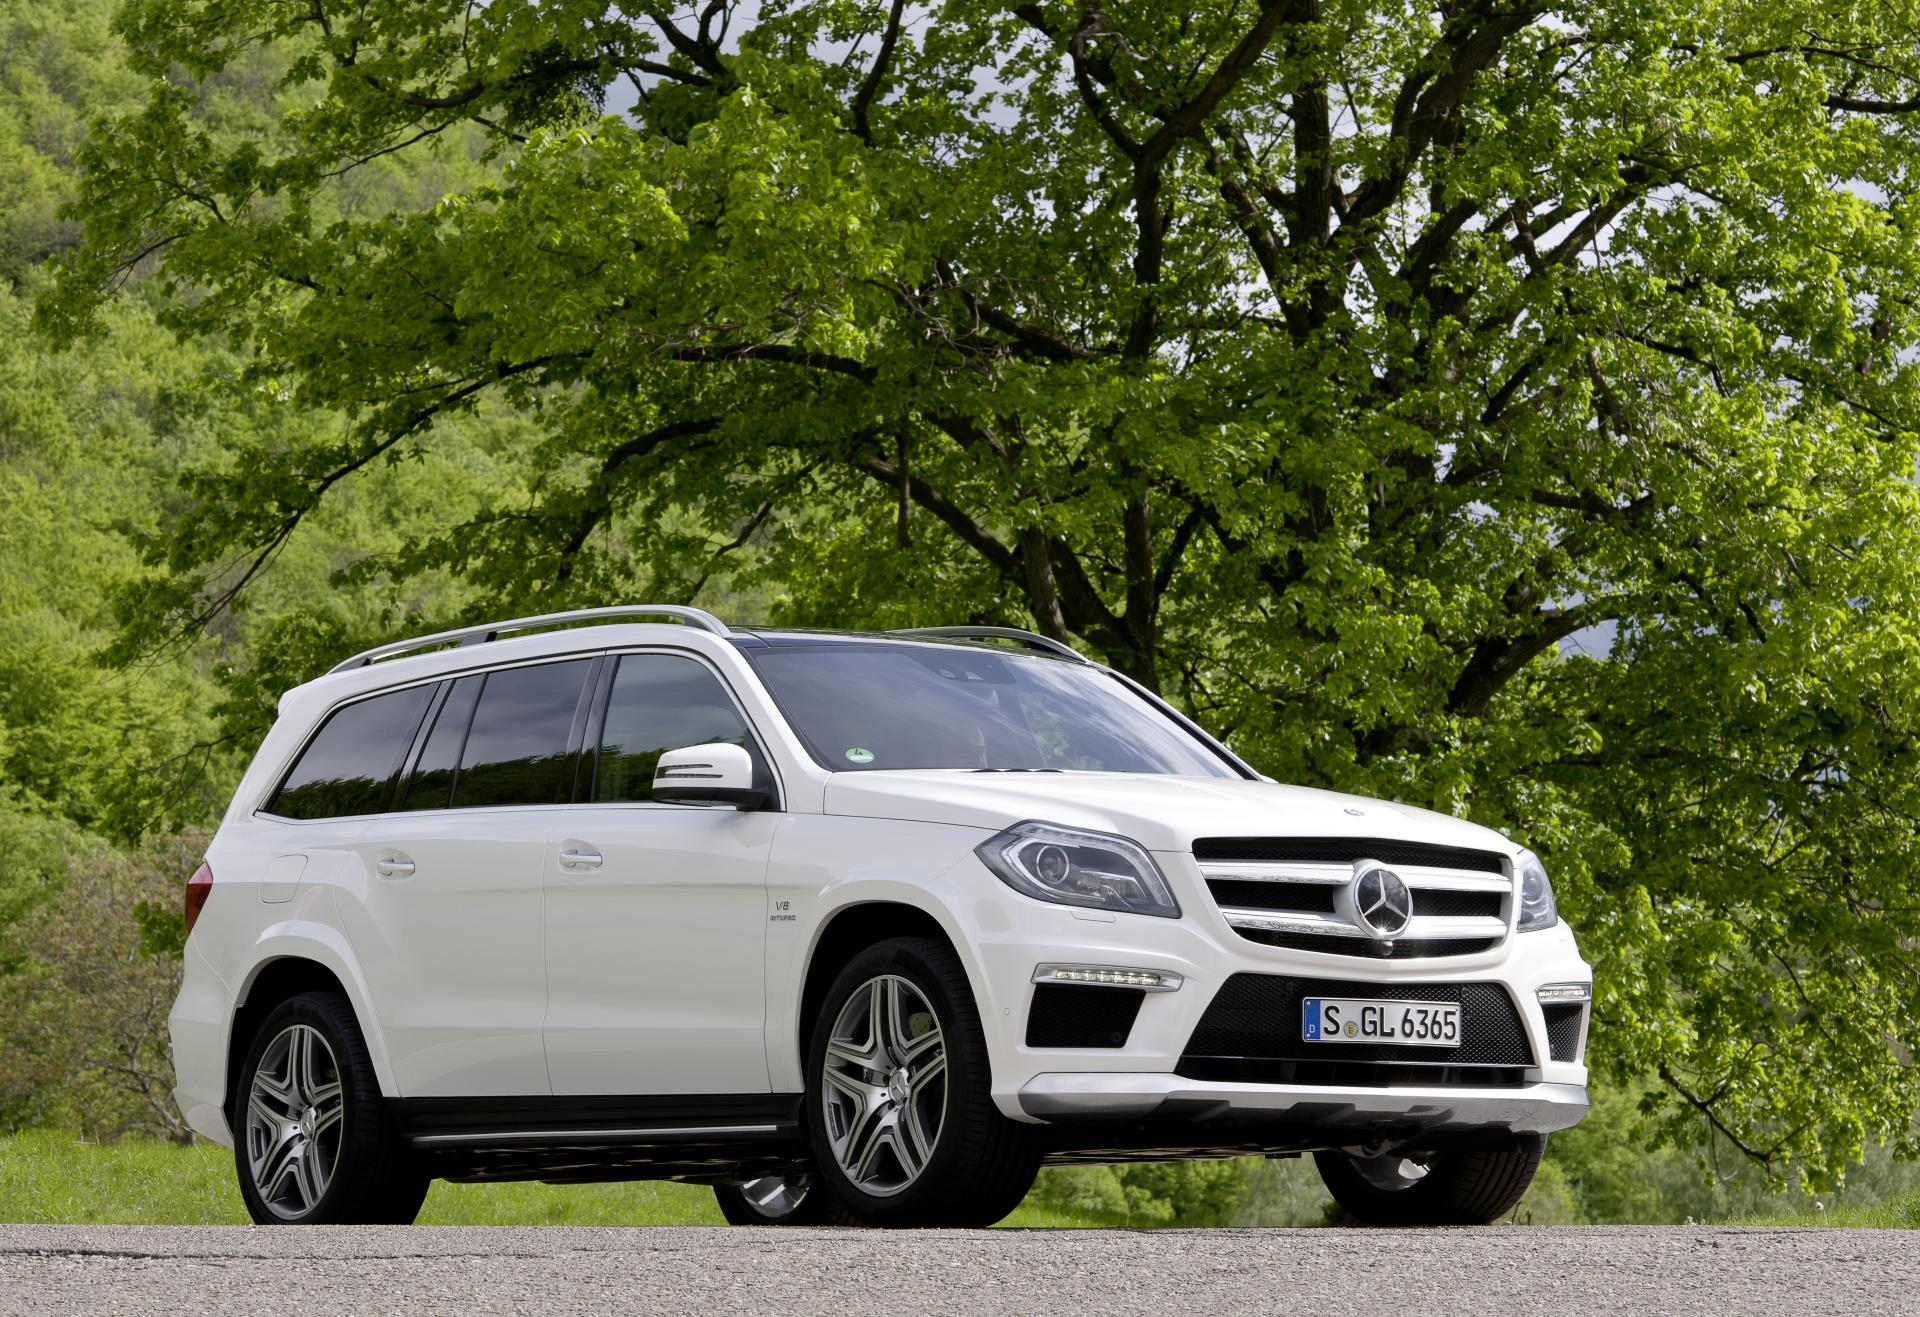 2013 mercedes benz gl 63 amg. Black Bedroom Furniture Sets. Home Design Ideas